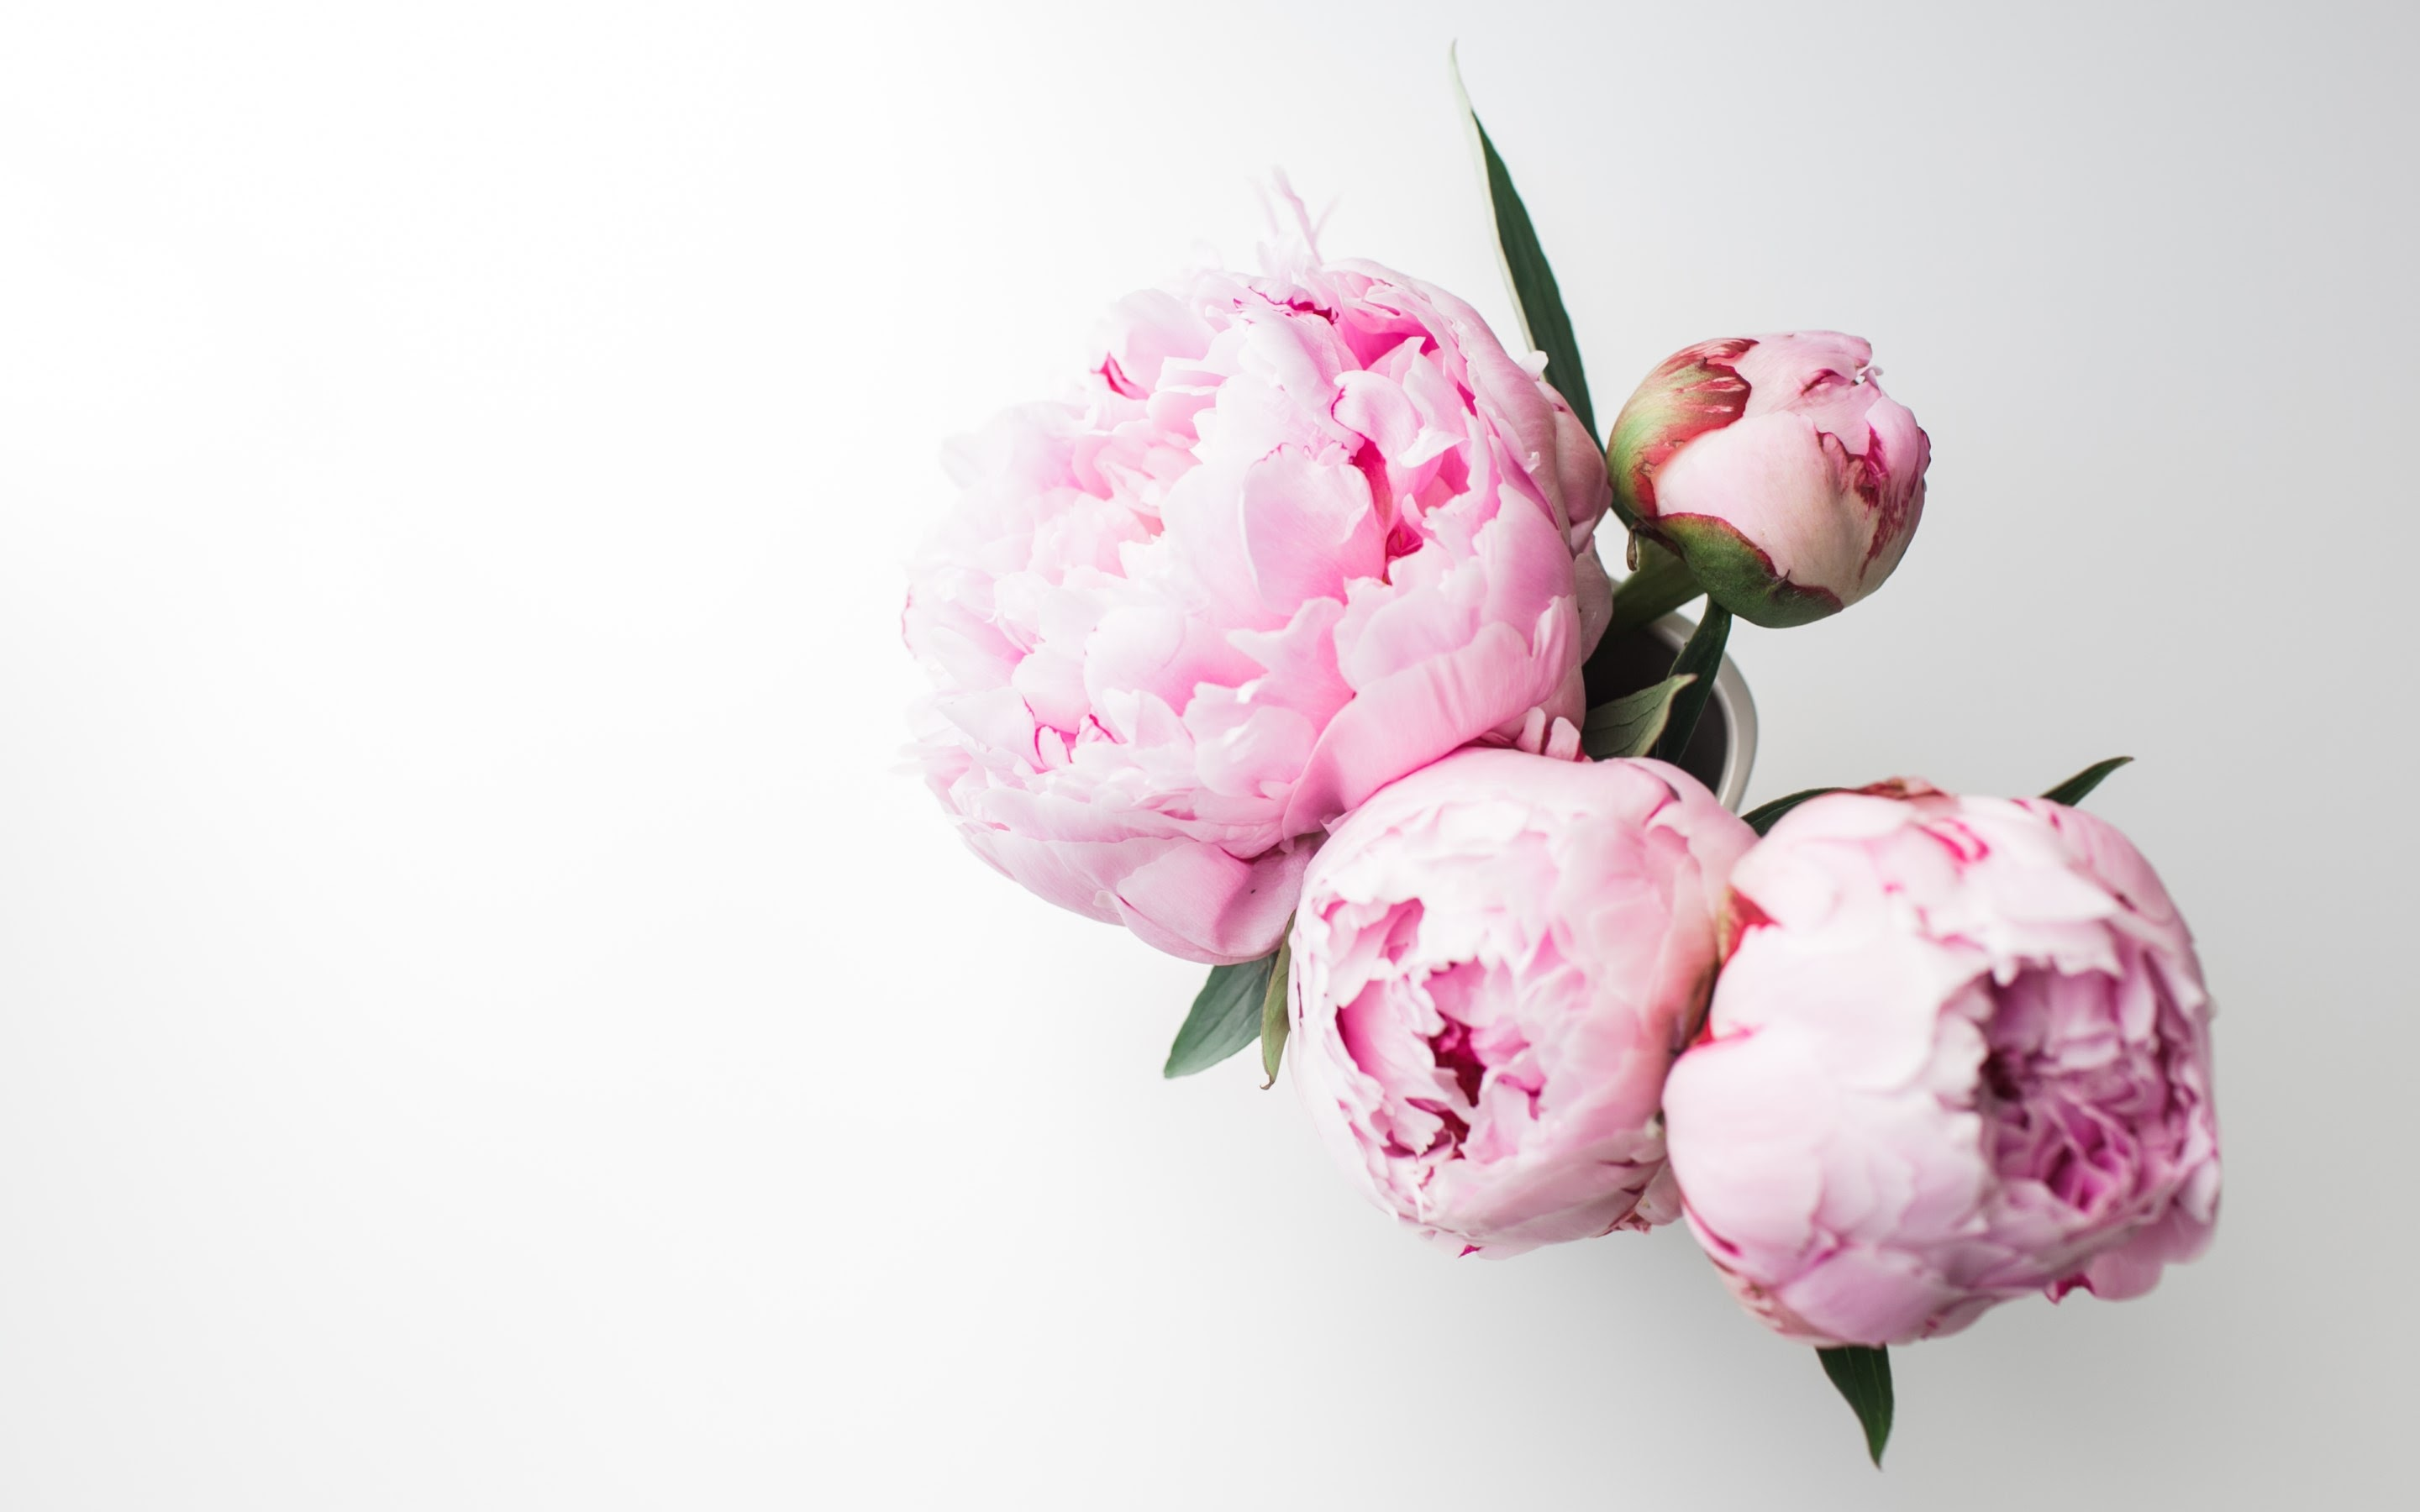 4k hd wallpaper bouquet of peonies a· by andreea with a canon eos 5d mark ii